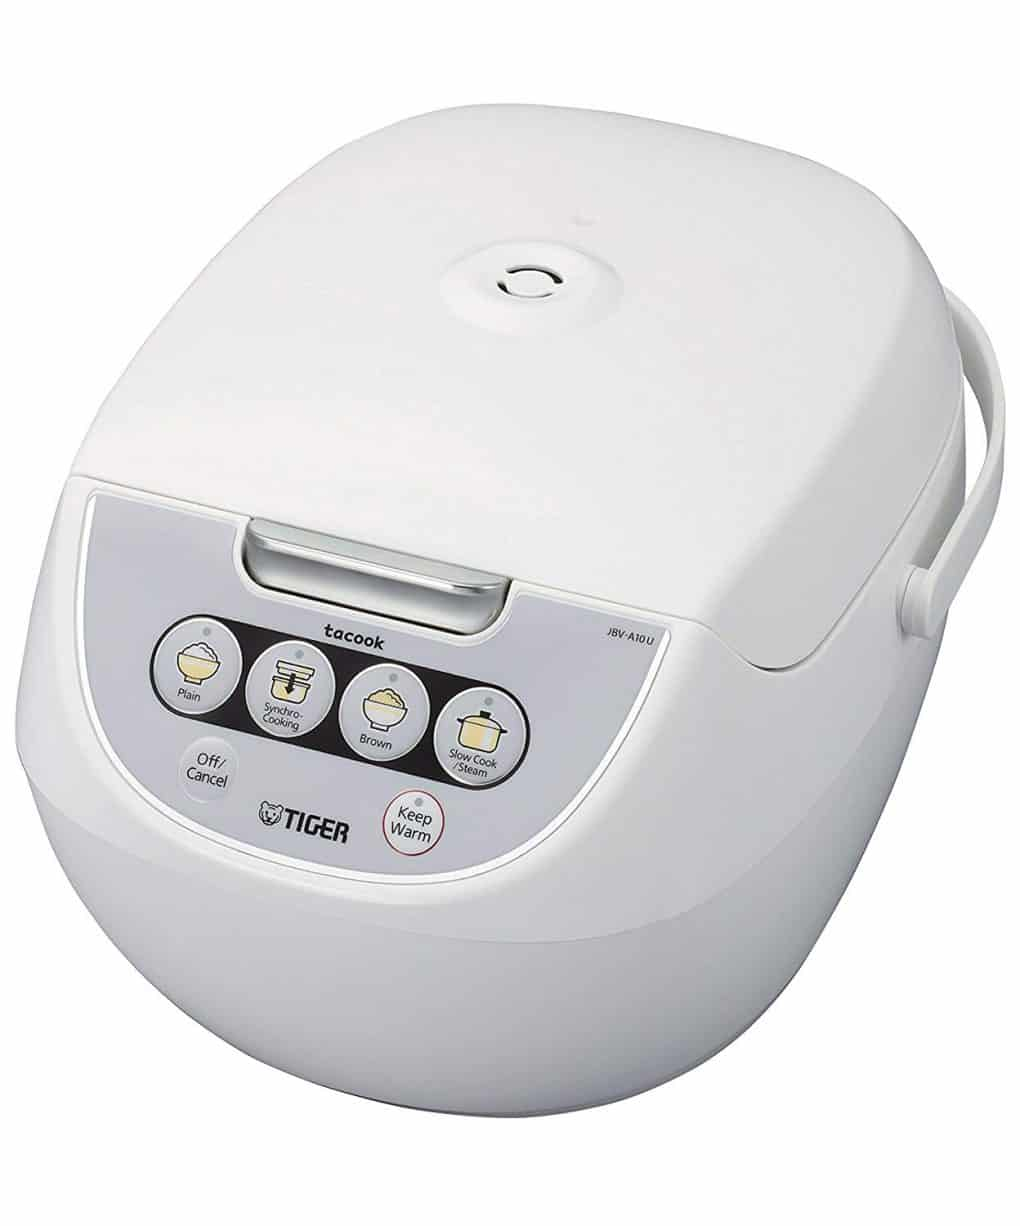 Tiger rice cooker with steamer